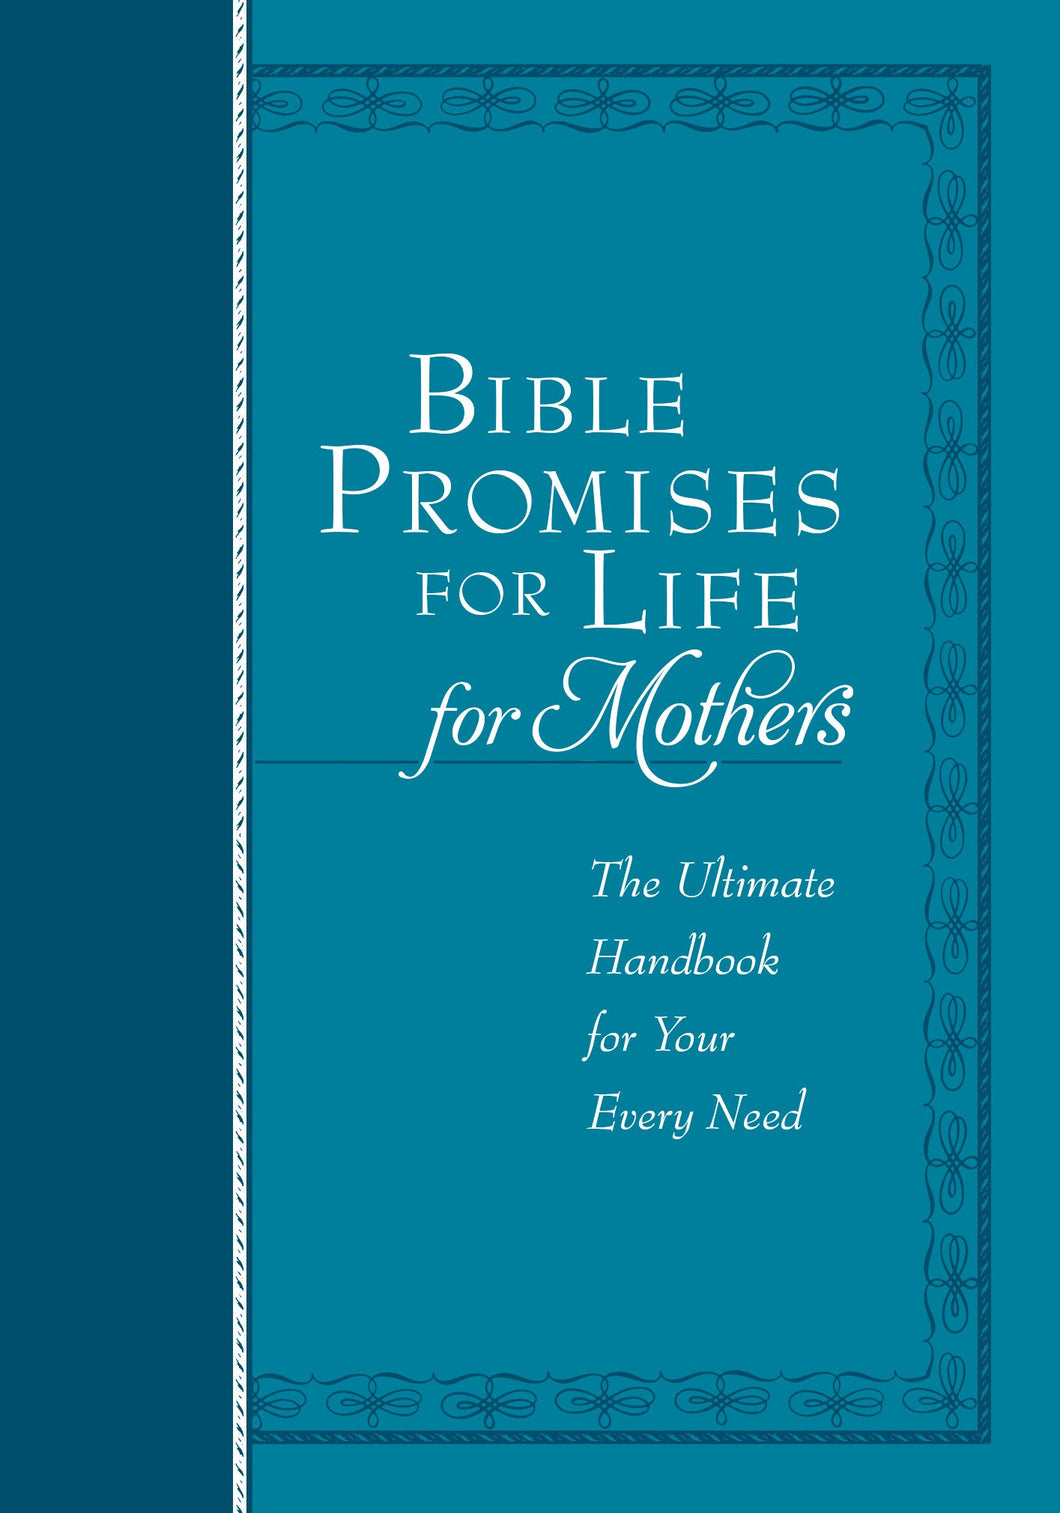 Bible Promises For Life For Mothers